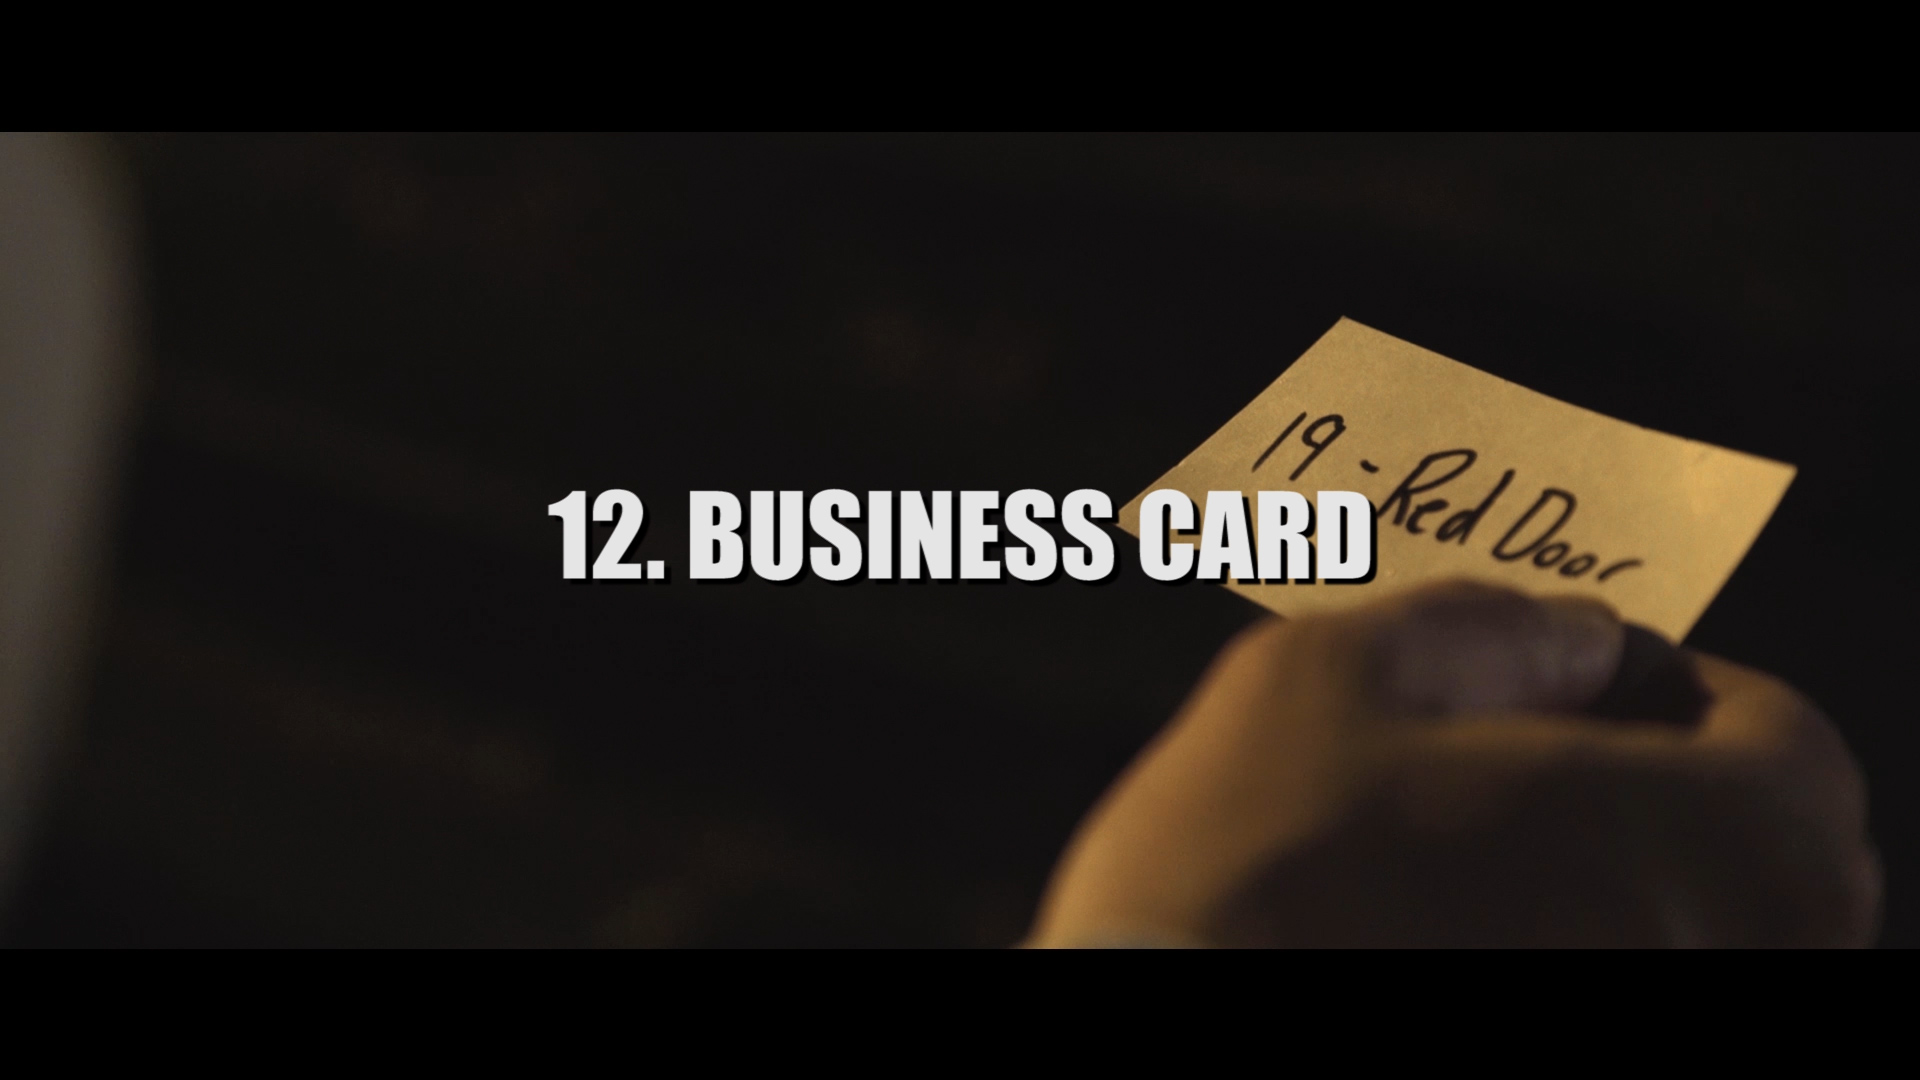 12. Business Card.jpg